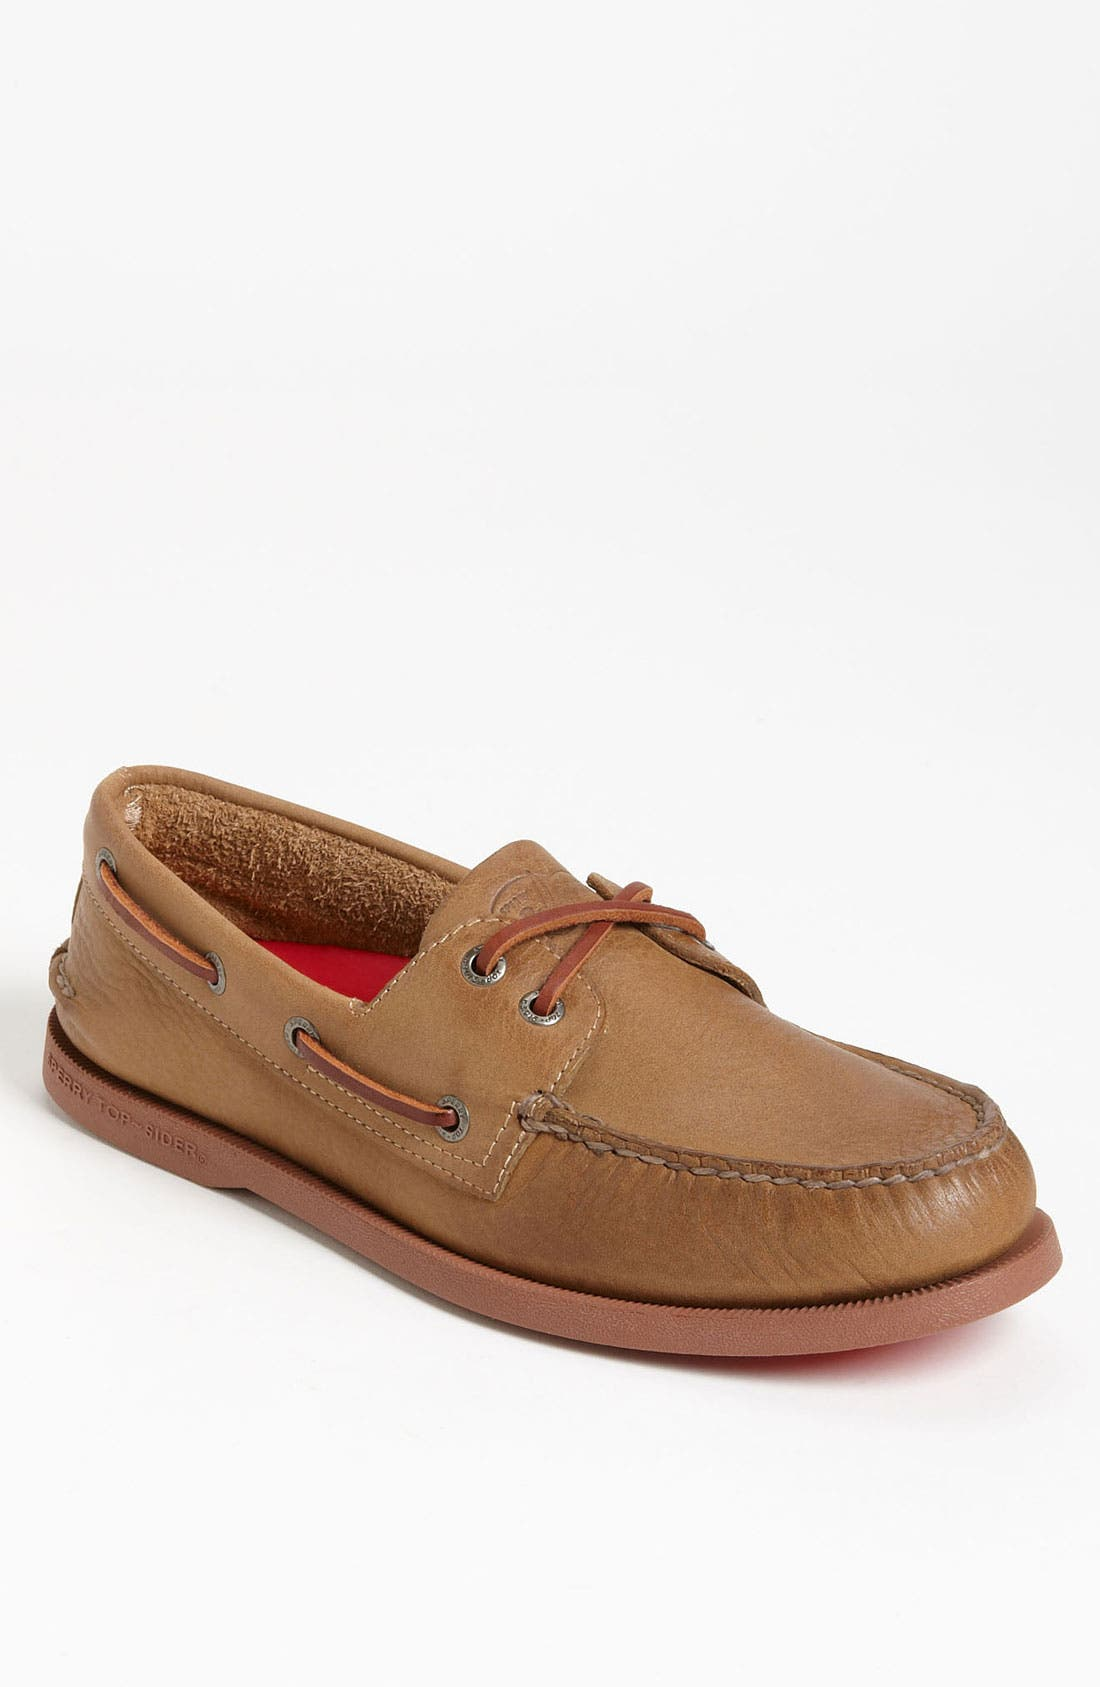 Alternate Image 1 Selected - Sperry Top-Sider® 'Authentic Original 2-Eye' Burnished Boat Shoe